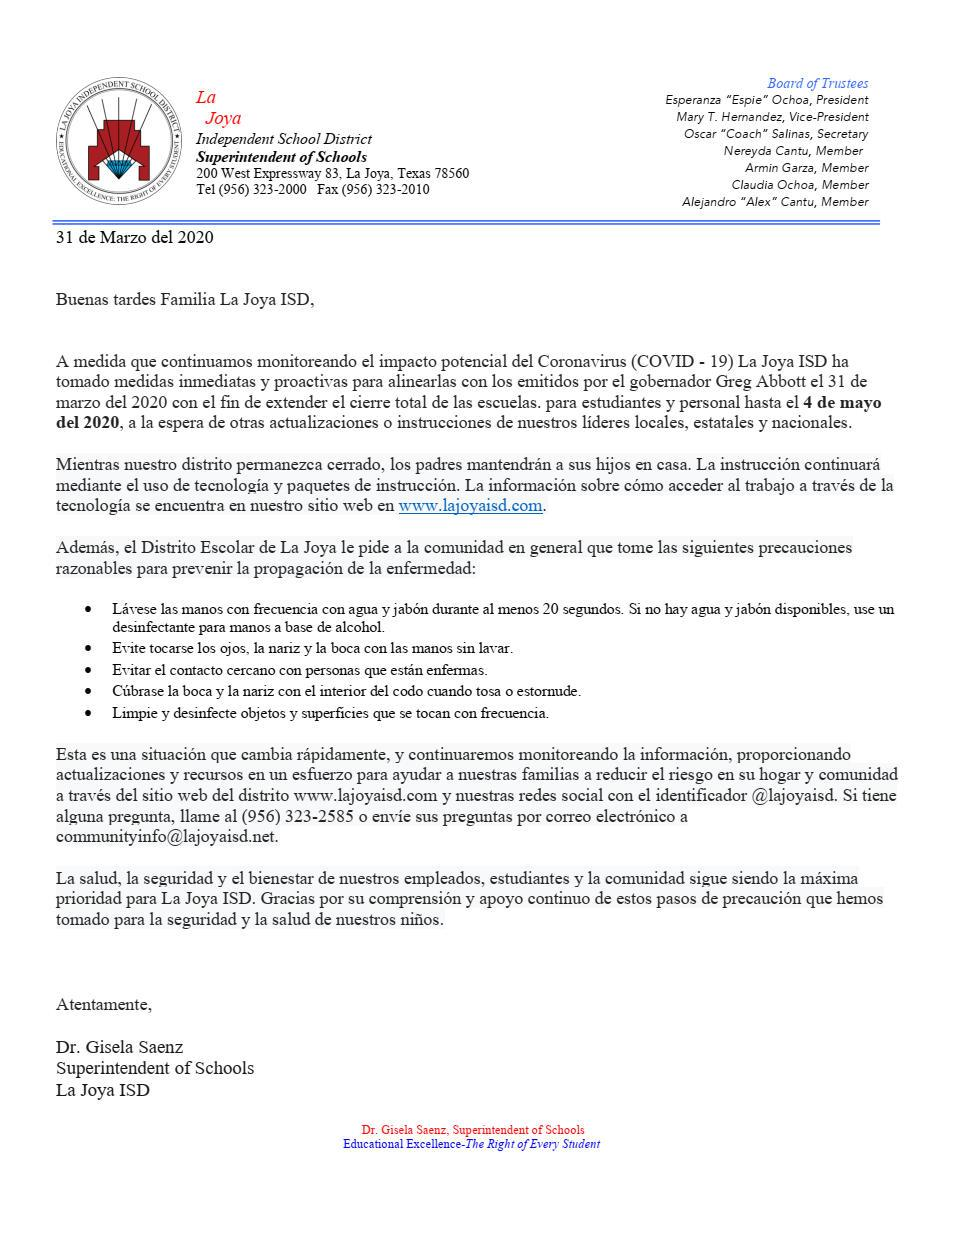 La Joya ISD Extended Closure as of March 31, 2020